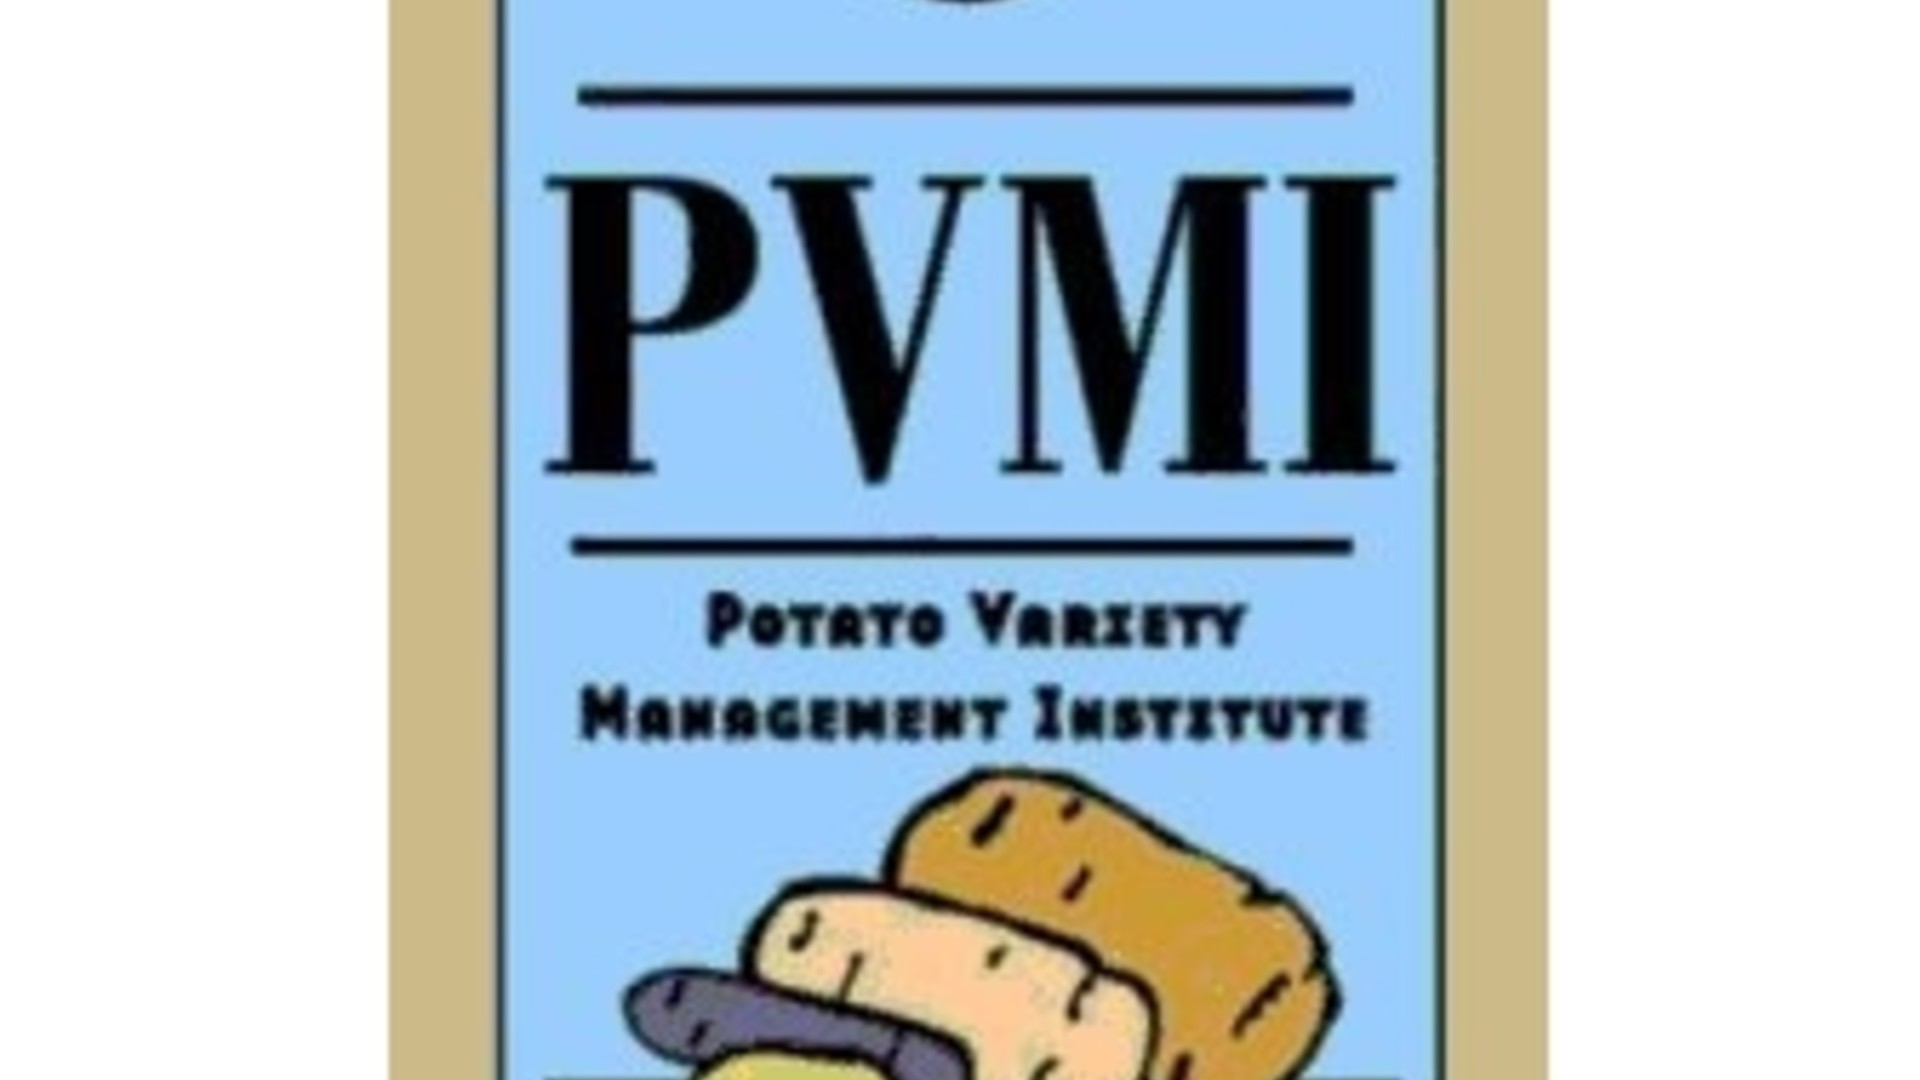 Potato Variety Management Institute Pt 2